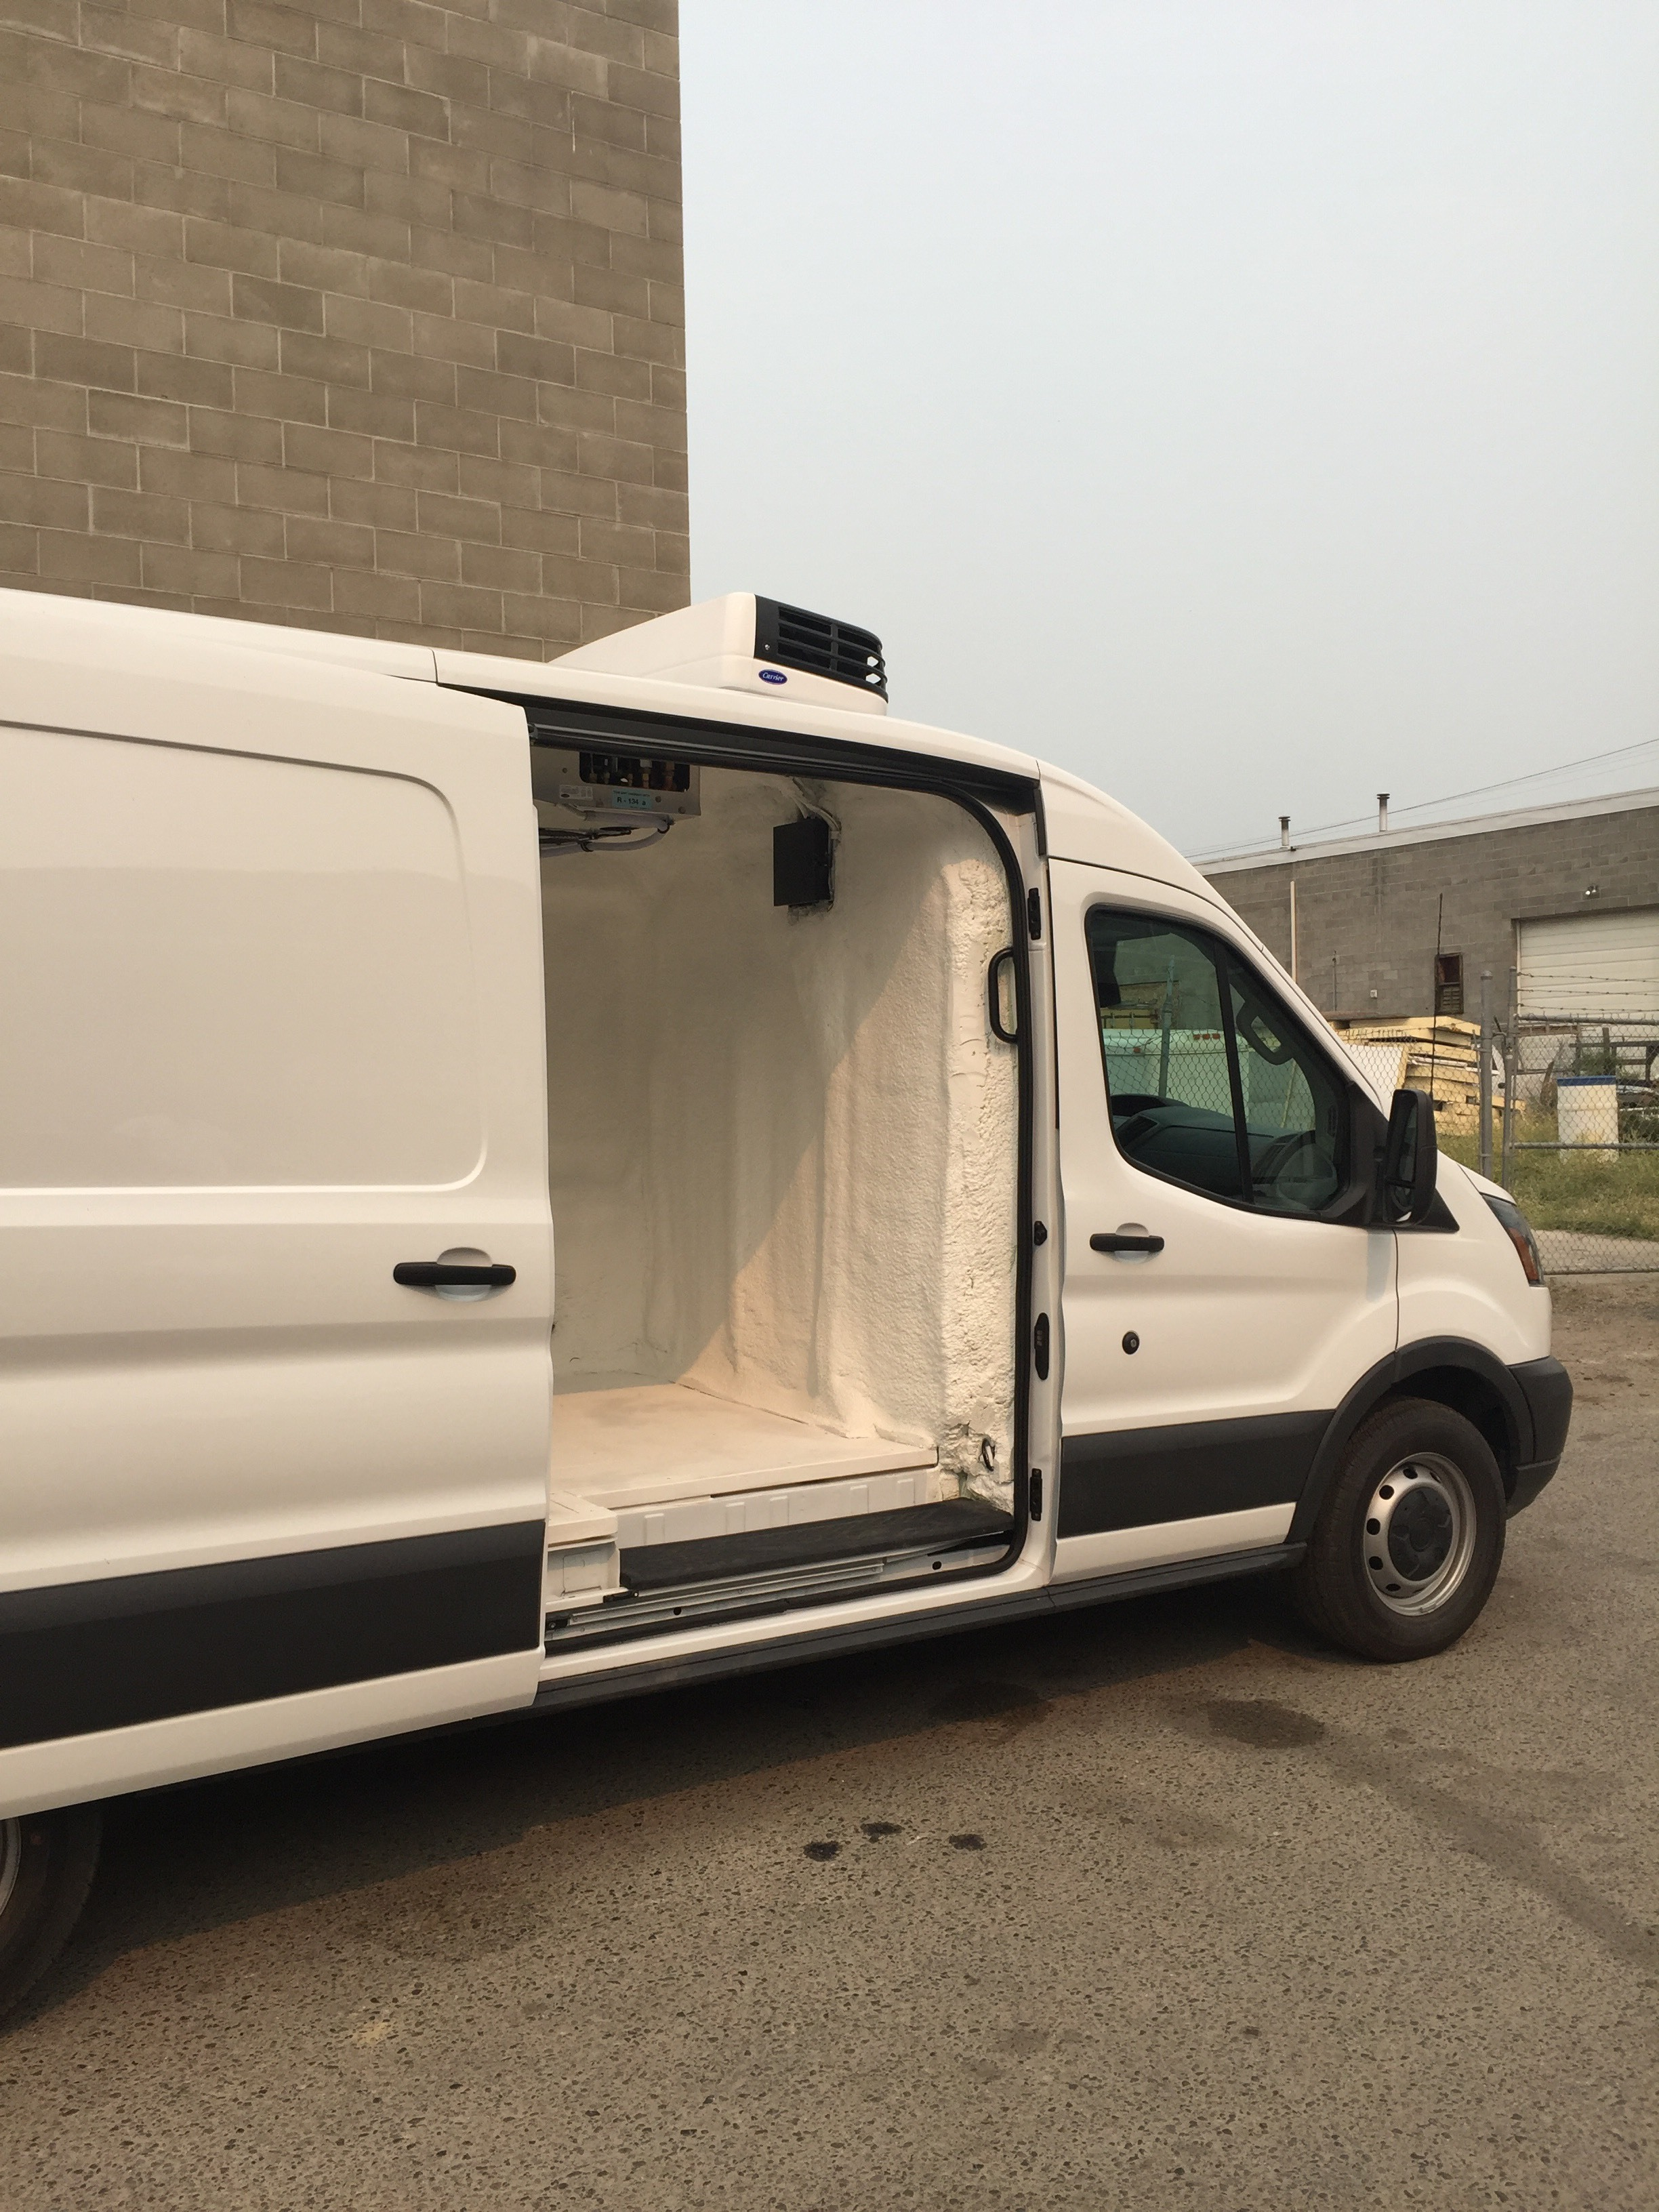 2017 Ford Transit Van Carrier reefer install and insulate.